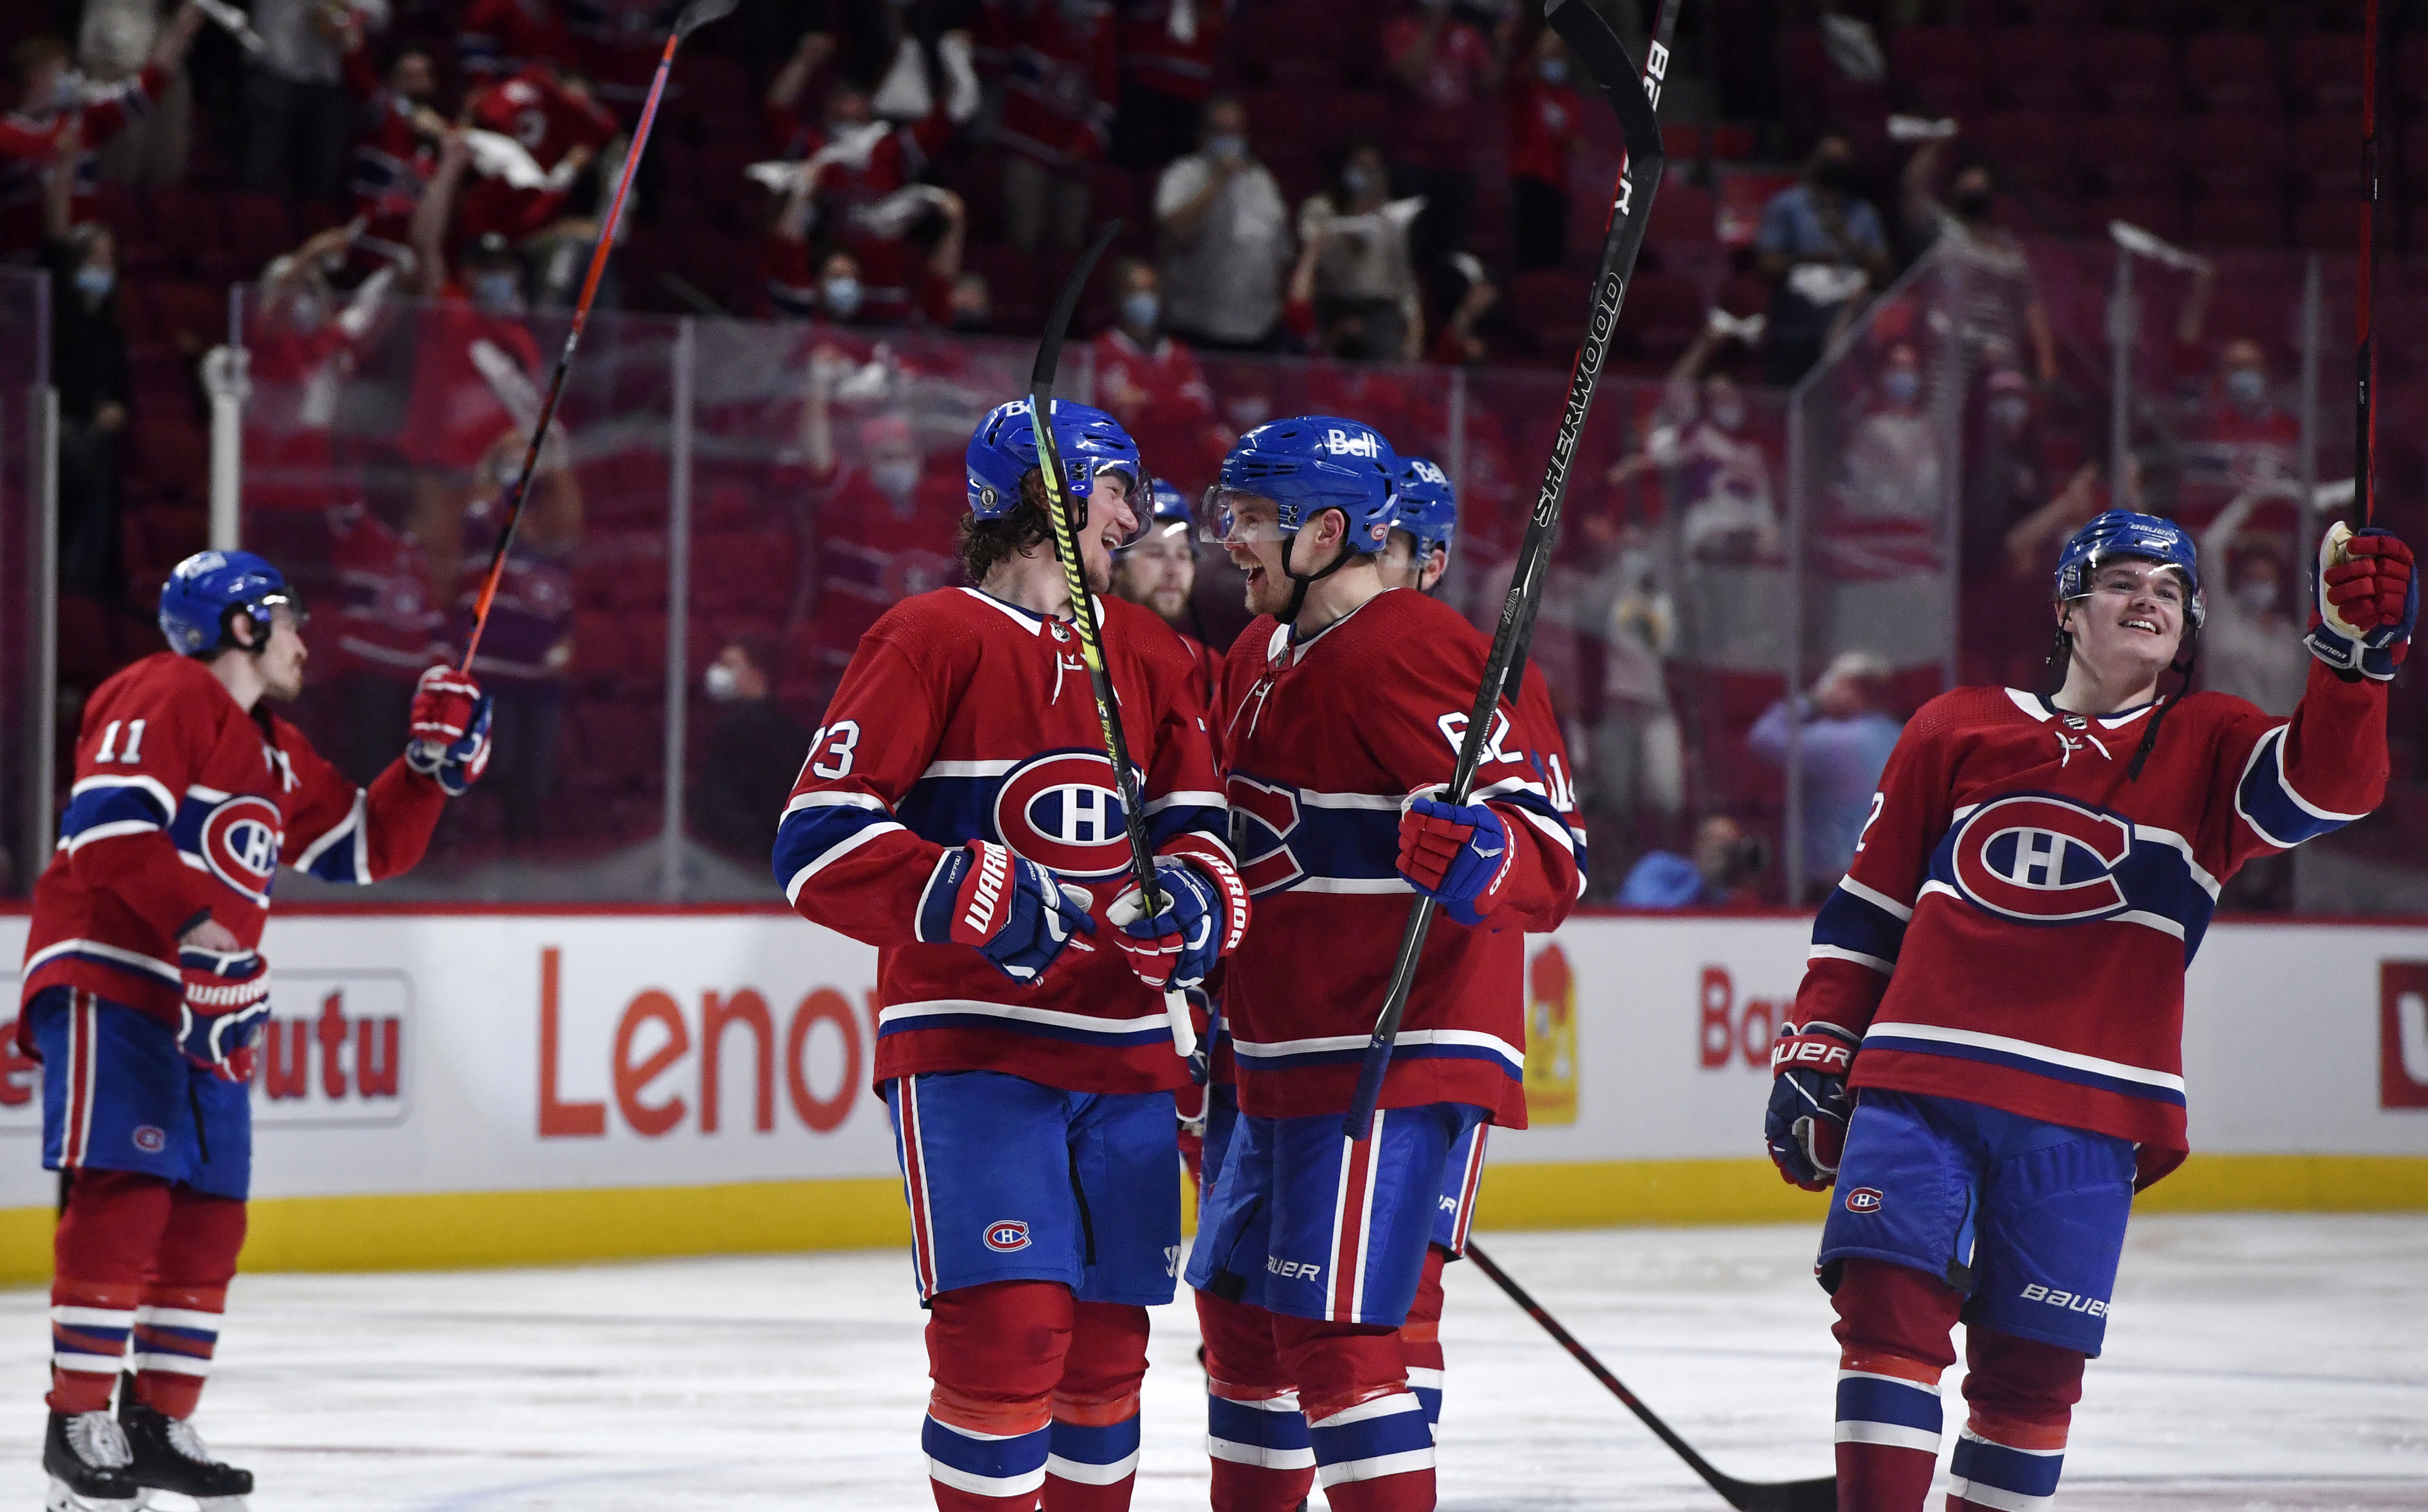 Montreal Canadiens forward Tyler Toffoli (73) and teammate forward Artturi Lehkonen (62) celebrate the series win against the Winnipeg Jets during the overtime period in game four of the second round of the 2021 Stanley Cup Playoffs at the Bell Centre.